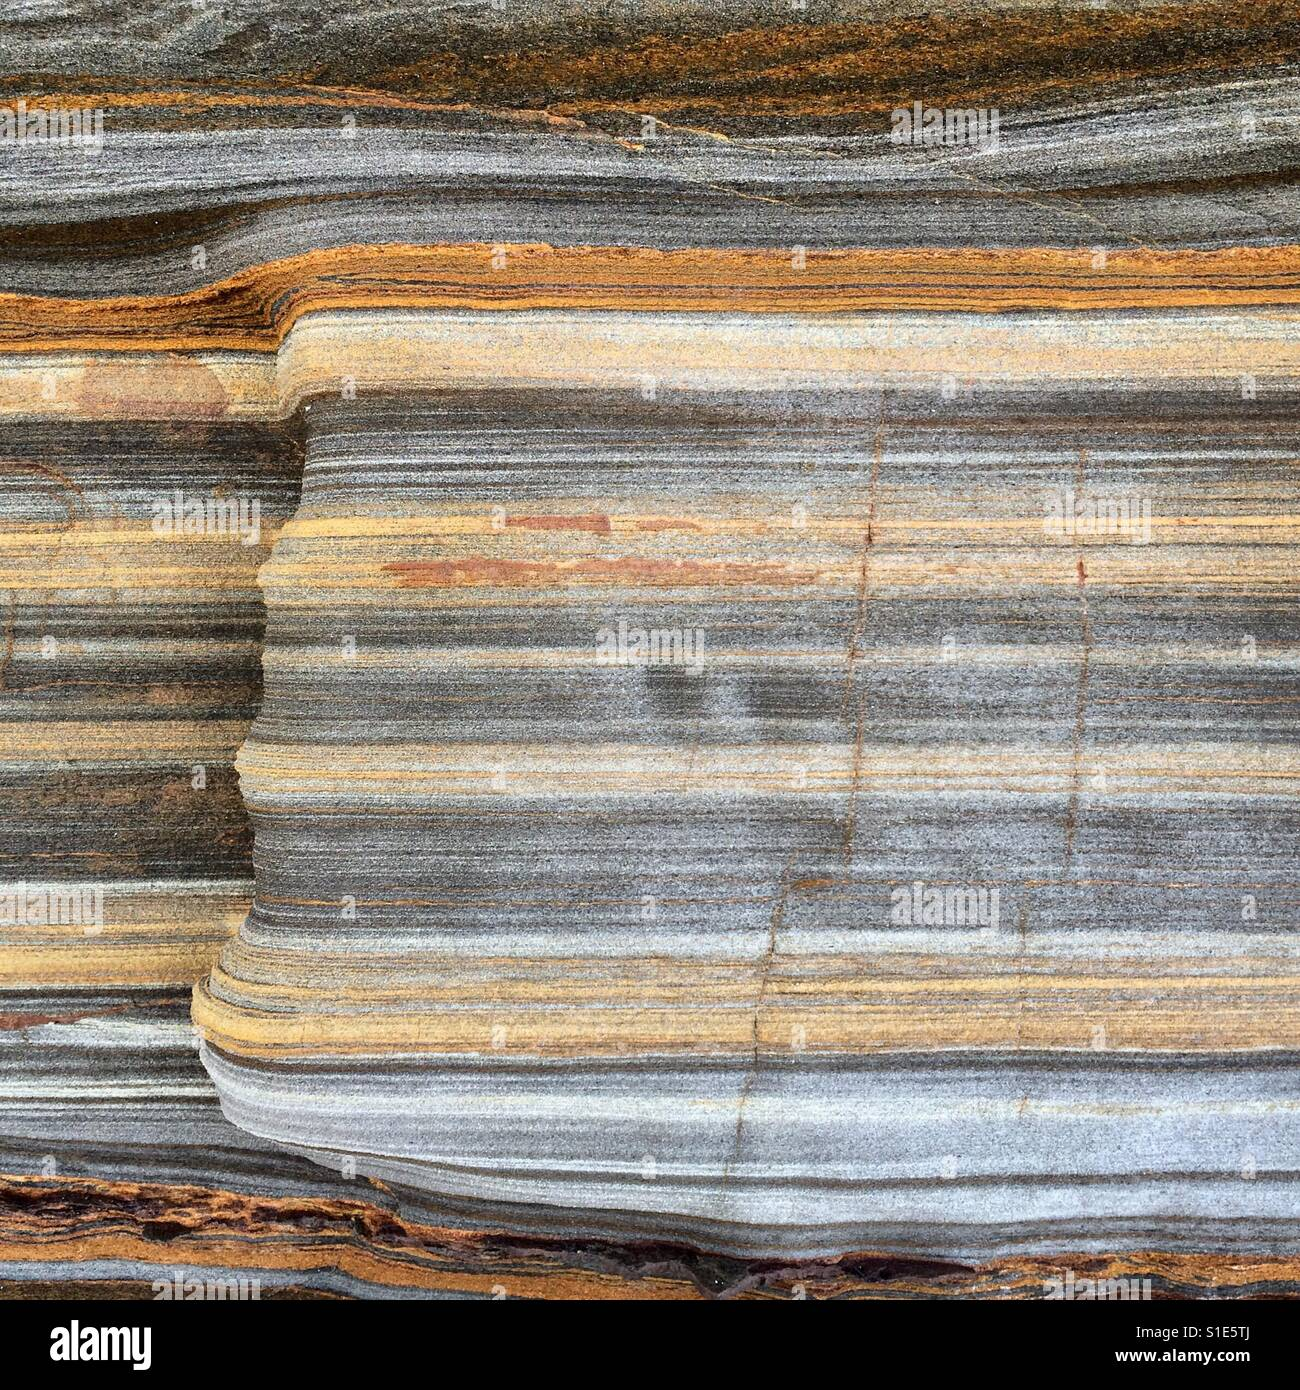 colorful bands and layers of sedimentary rock stock photo